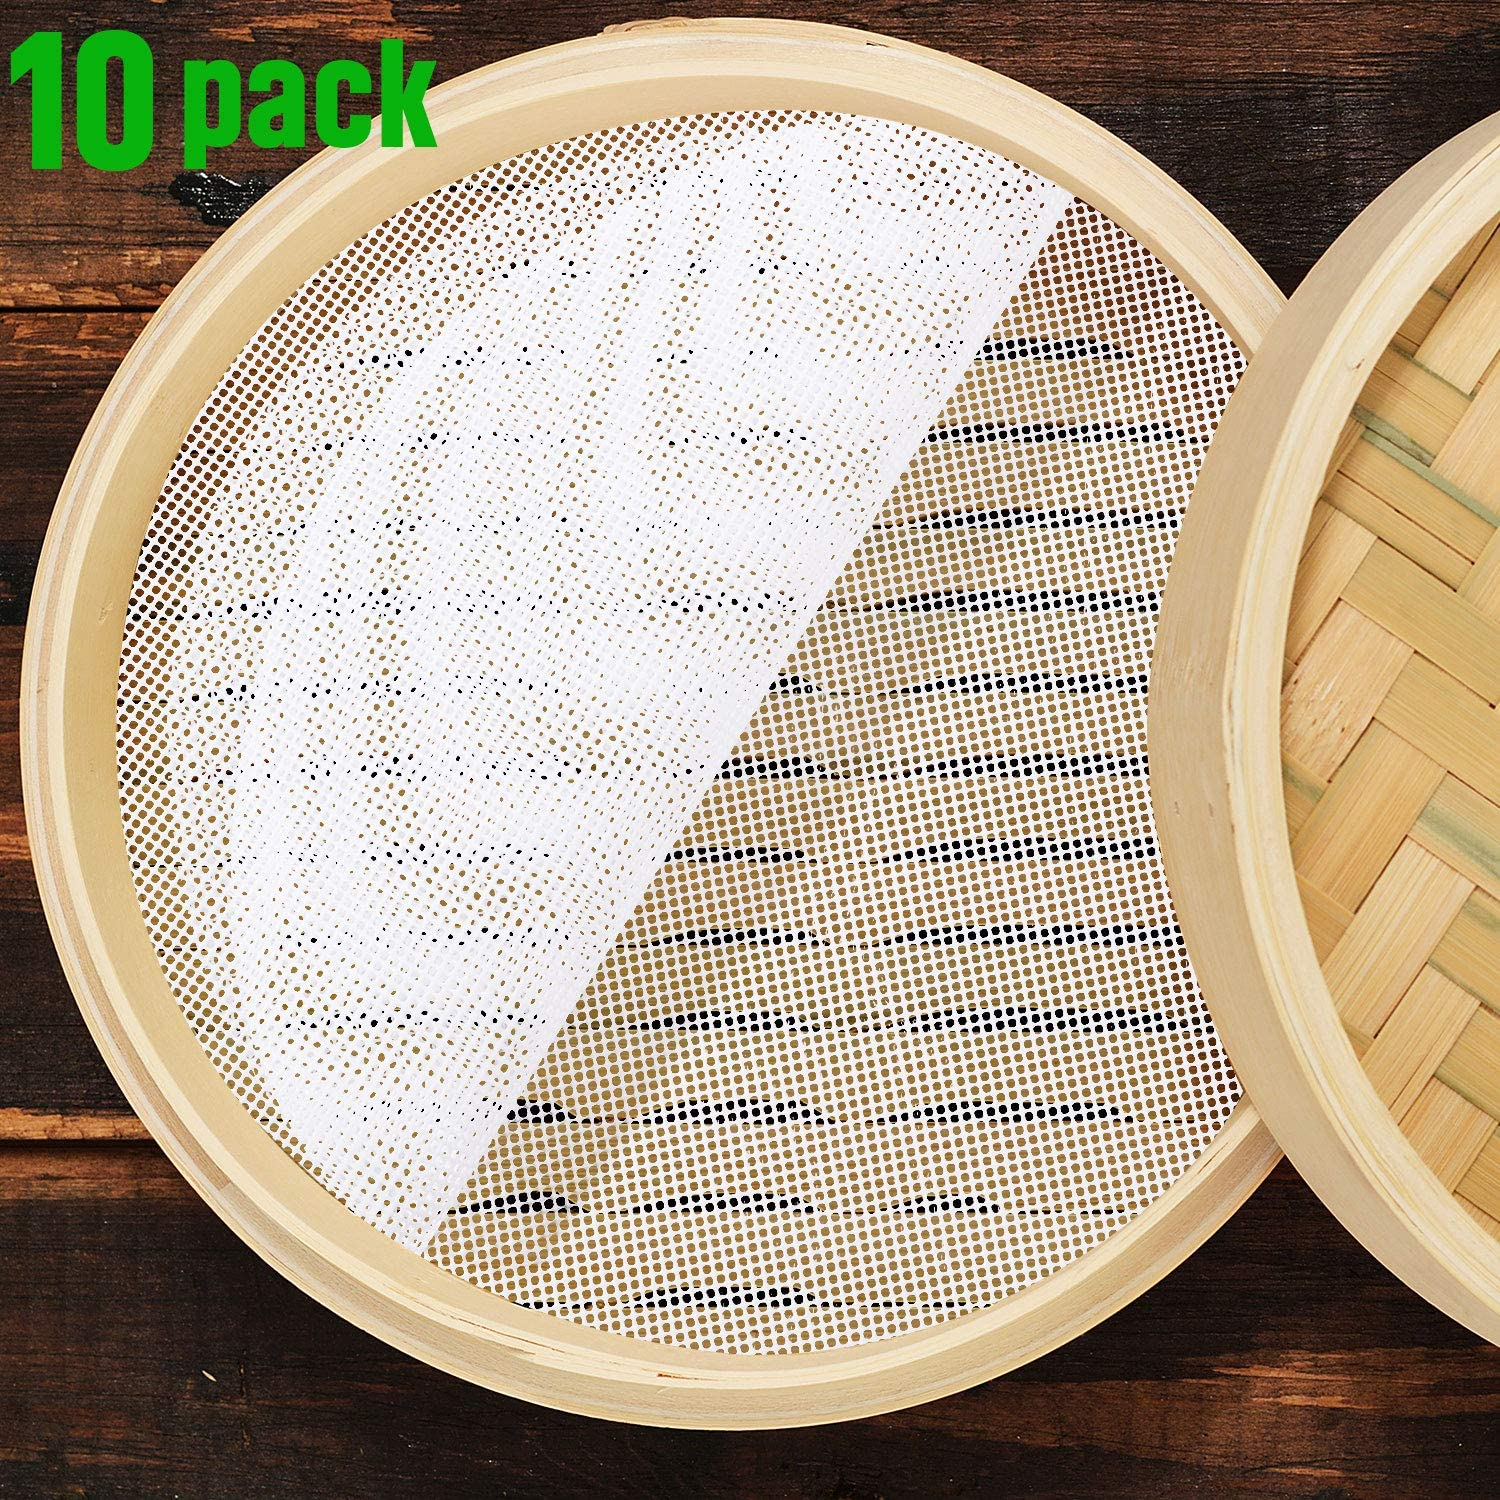 Boao 10 Pieces Silicone Steamer Mesh Mat 10 Inch Round Silicone Steamer Liners Mat Reusable Bun Steamer Pad Non-Stick Dim Sum Mesh for Home Kitchen Restaurant Dumplings Pastry